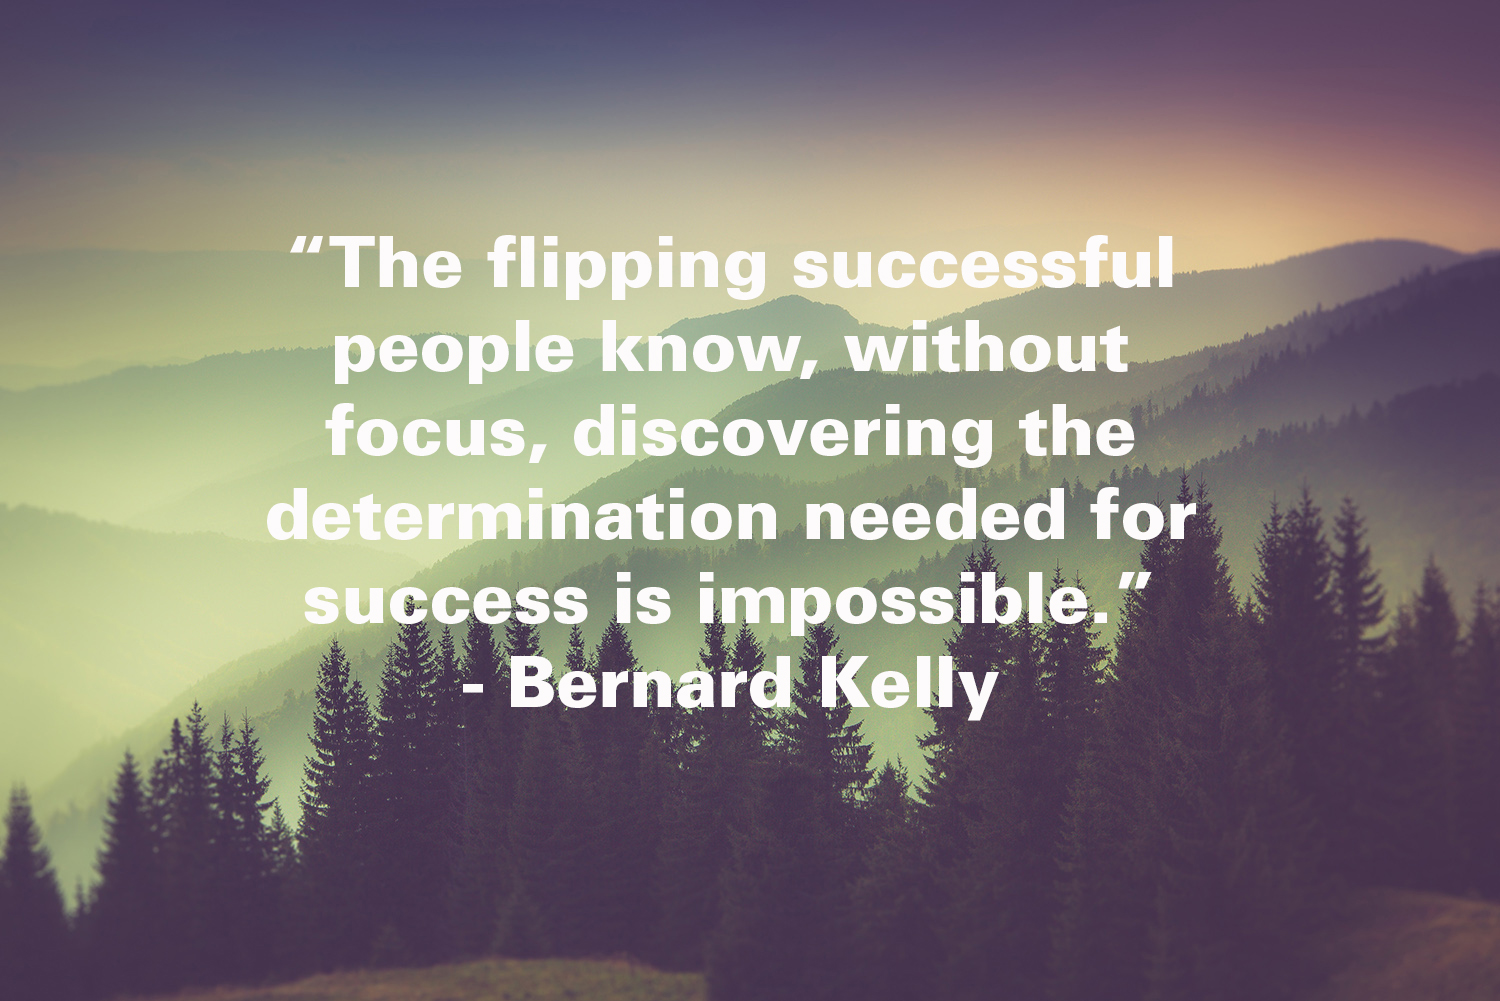 Discover Your Determination…